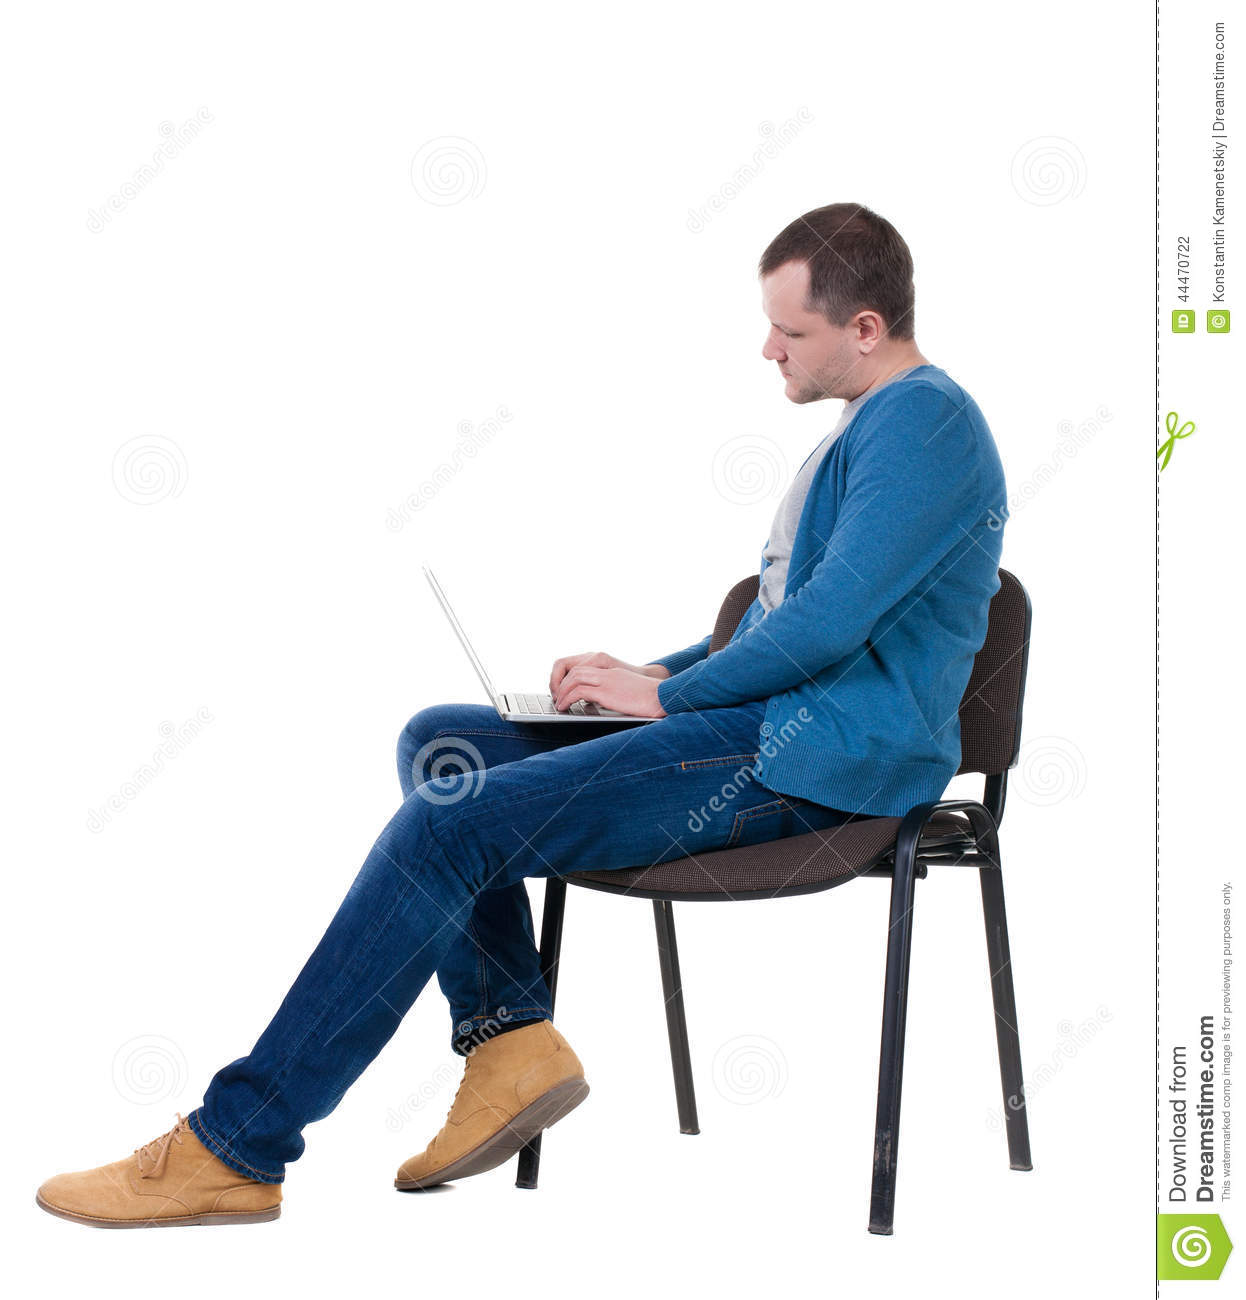 Background blue chair guy isolated laptop man over side sits